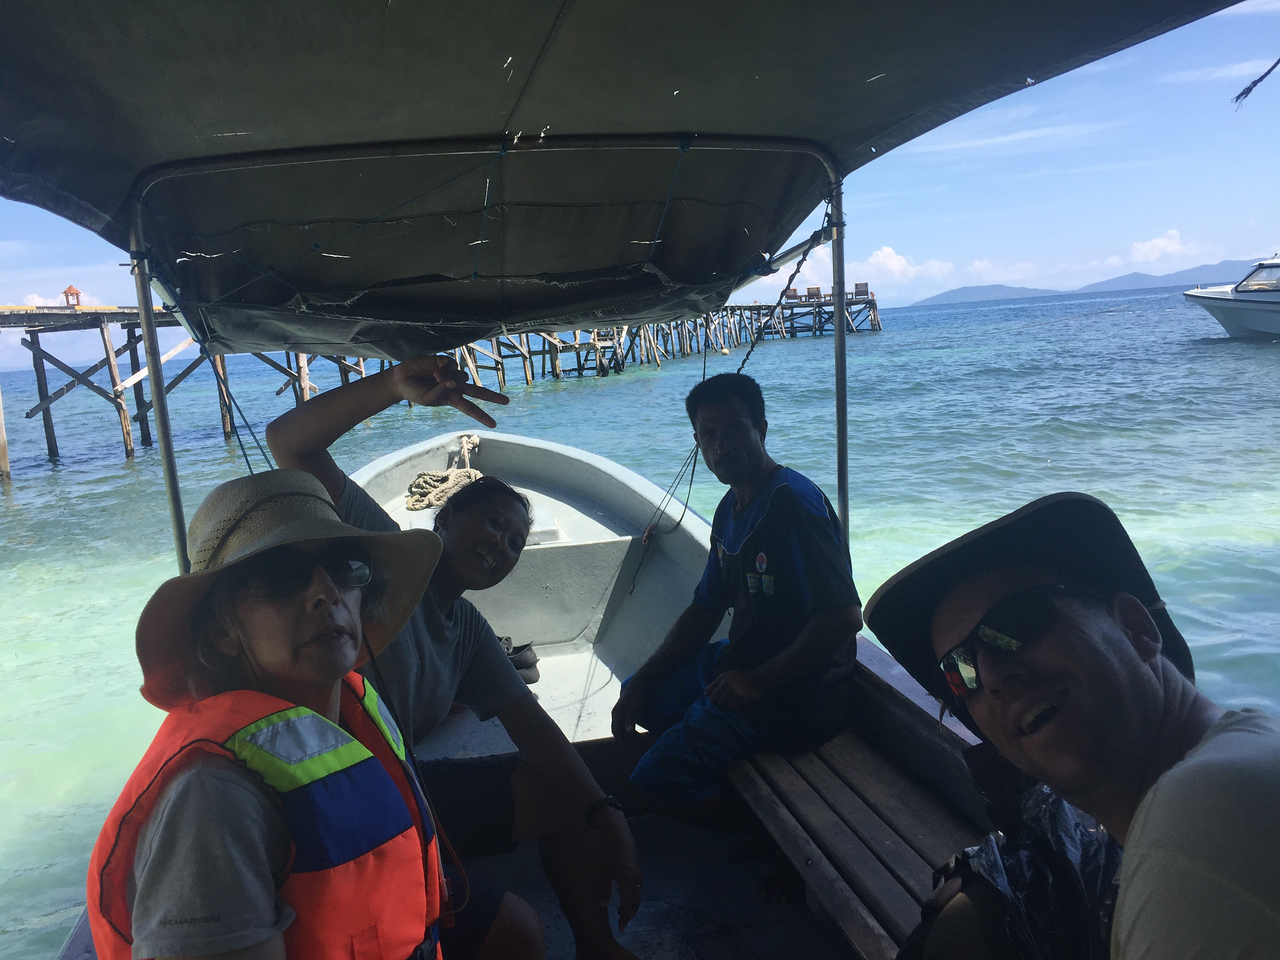 Yay! Snorkeling in the most diverse seas in the world!